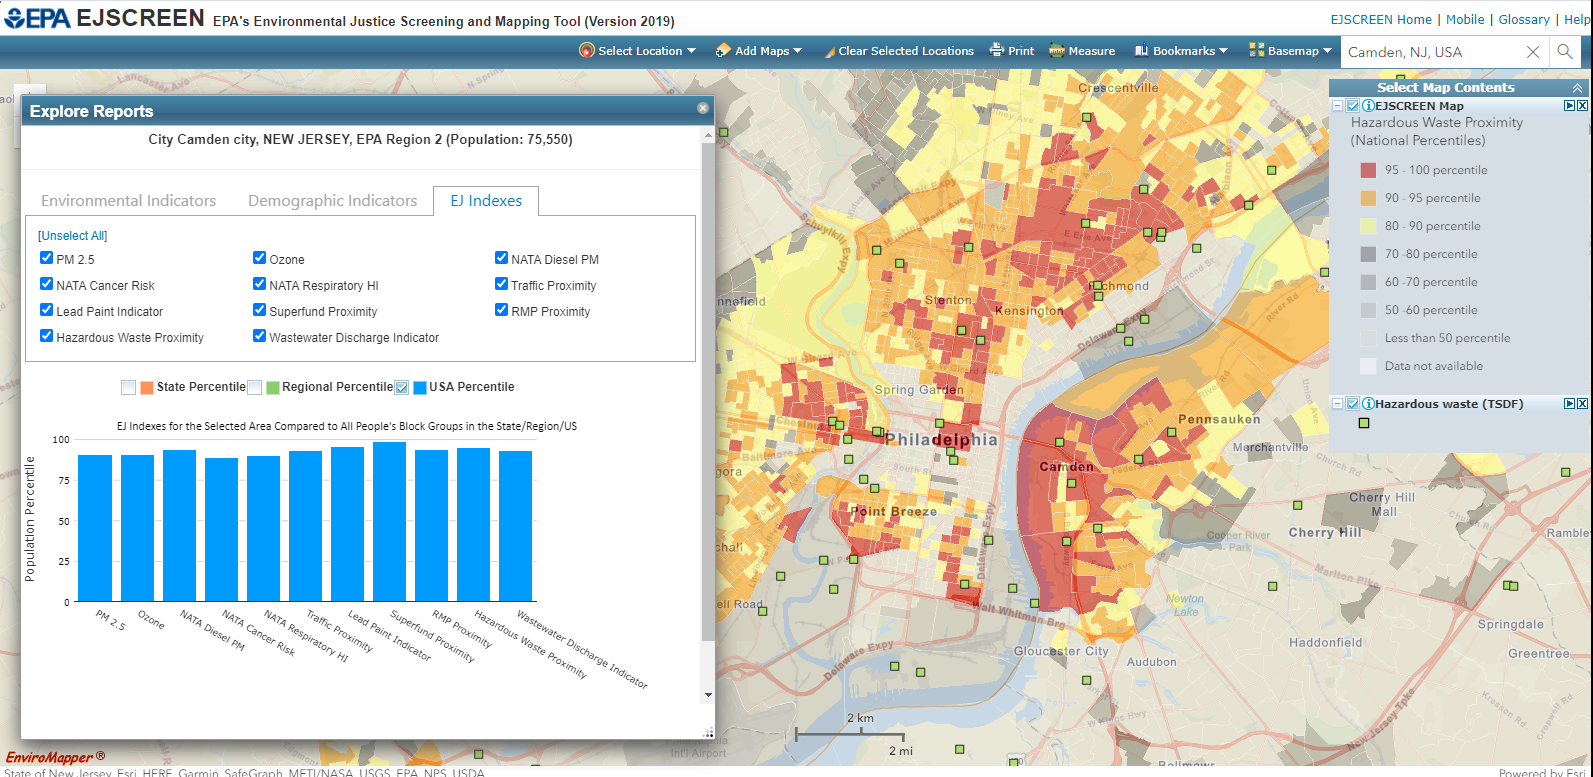 EPA environmental justice mapping tool